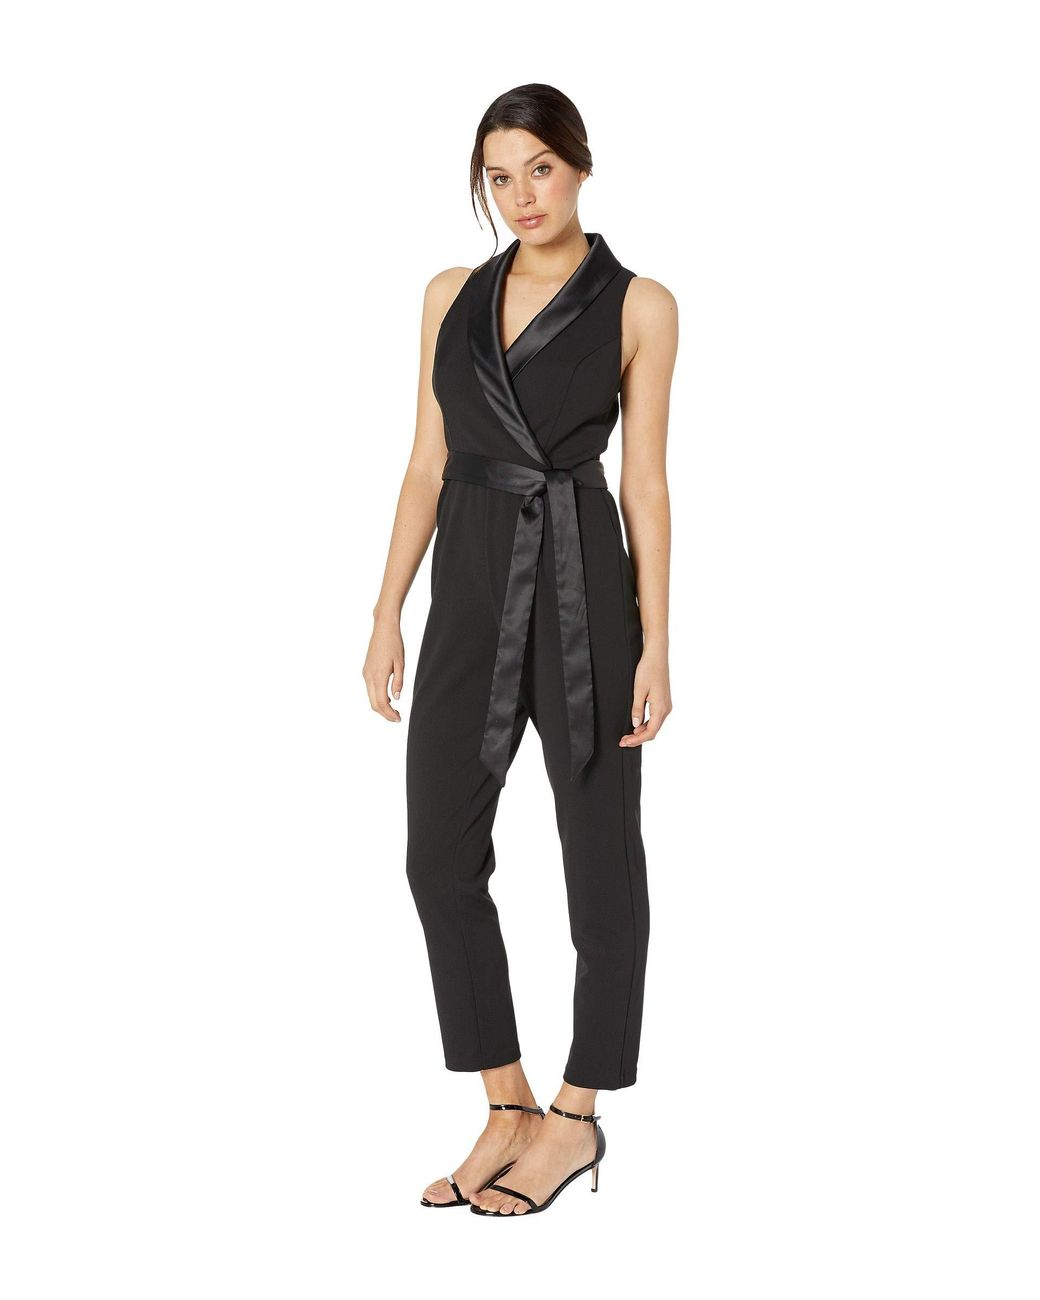 31568d3a61 Adrianna Papell Knit Crepe Wrap Top Sleeveless Jumpsuit With Stretch  Charmeuse Collar in Black - Lyst